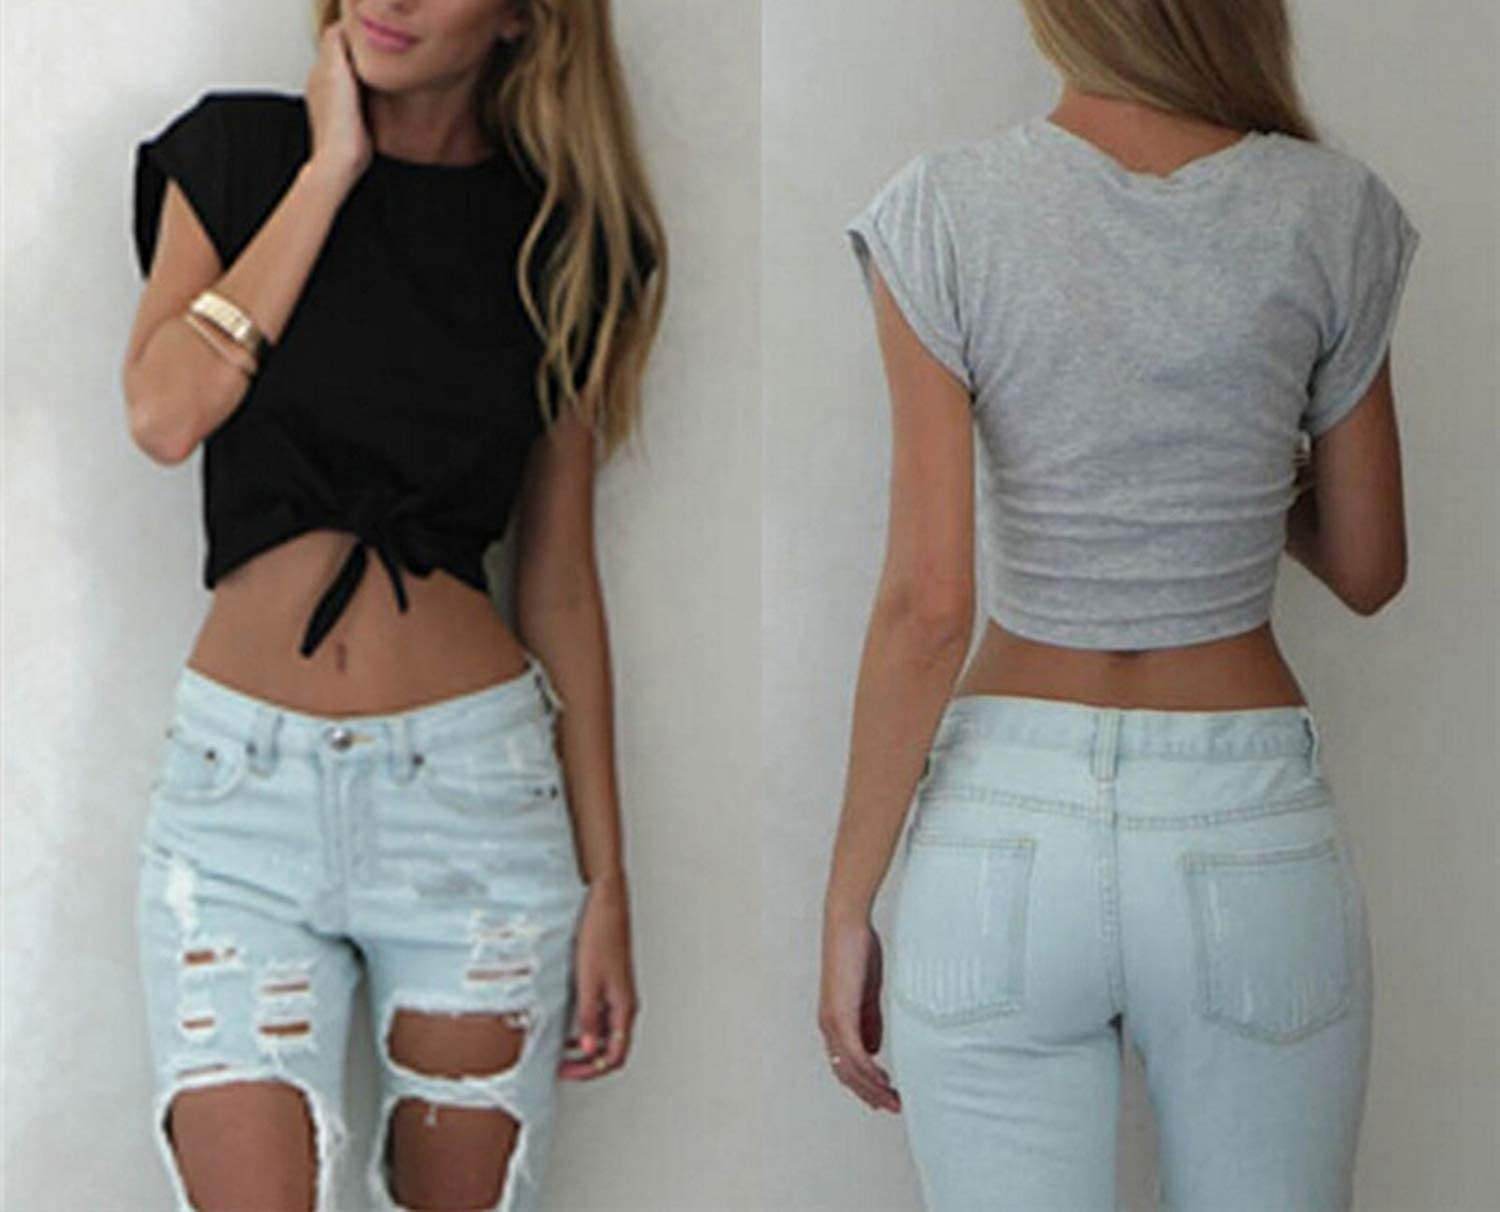 OHONLY-fashion-vests Women Knotted Tie Cropped T Shirt Casual Blouse Tanks White Grey Color